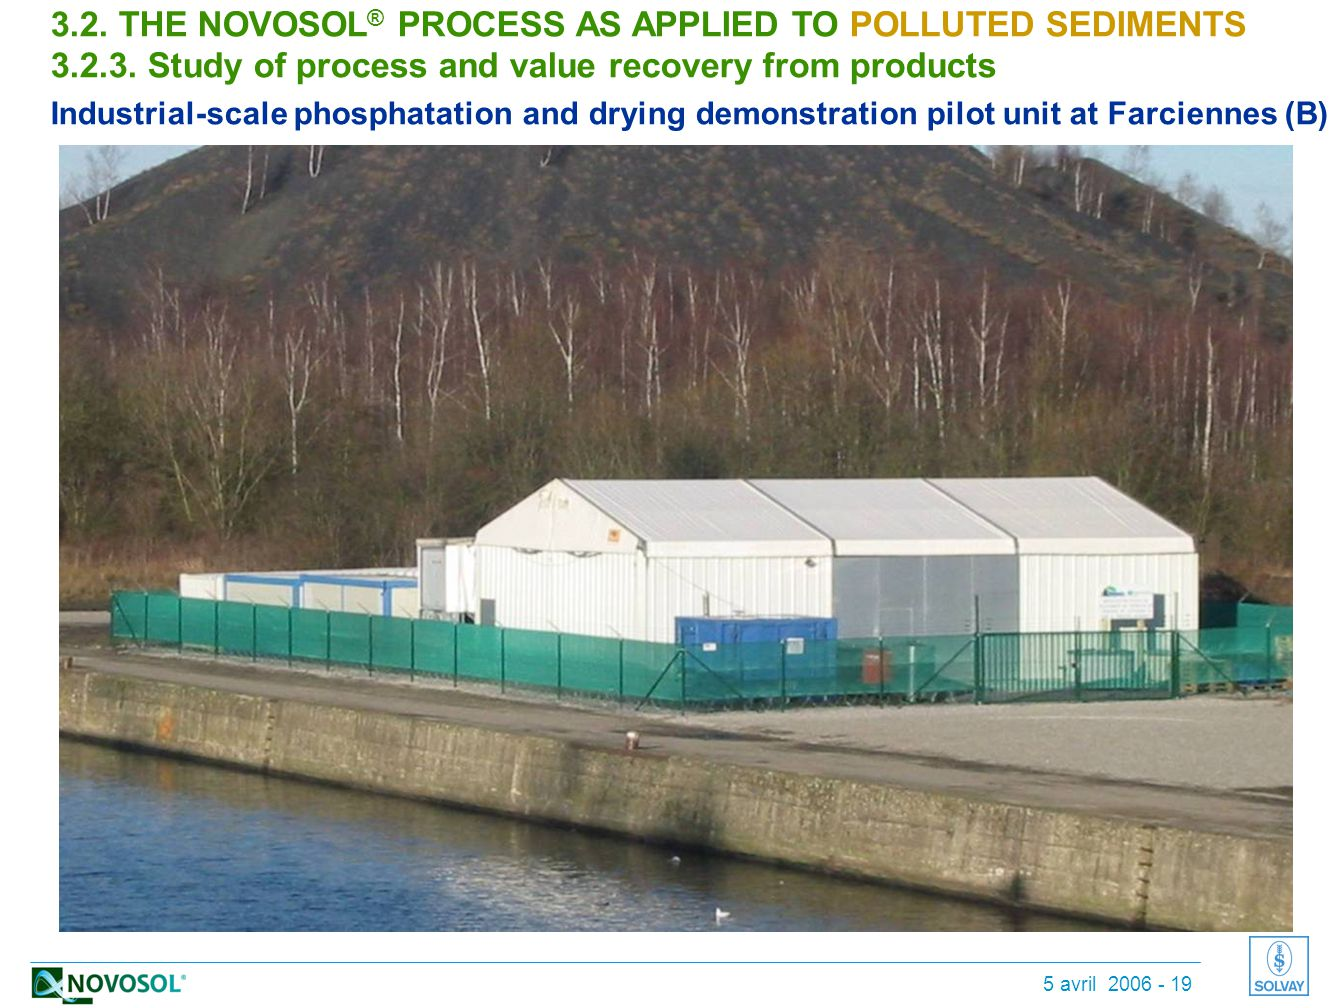 5 avril 2006 - 19 3.2.THE NOVOSOL ® PROCESS AS APPLIED TO POLLUTED SEDIMENTS 3.2.3.